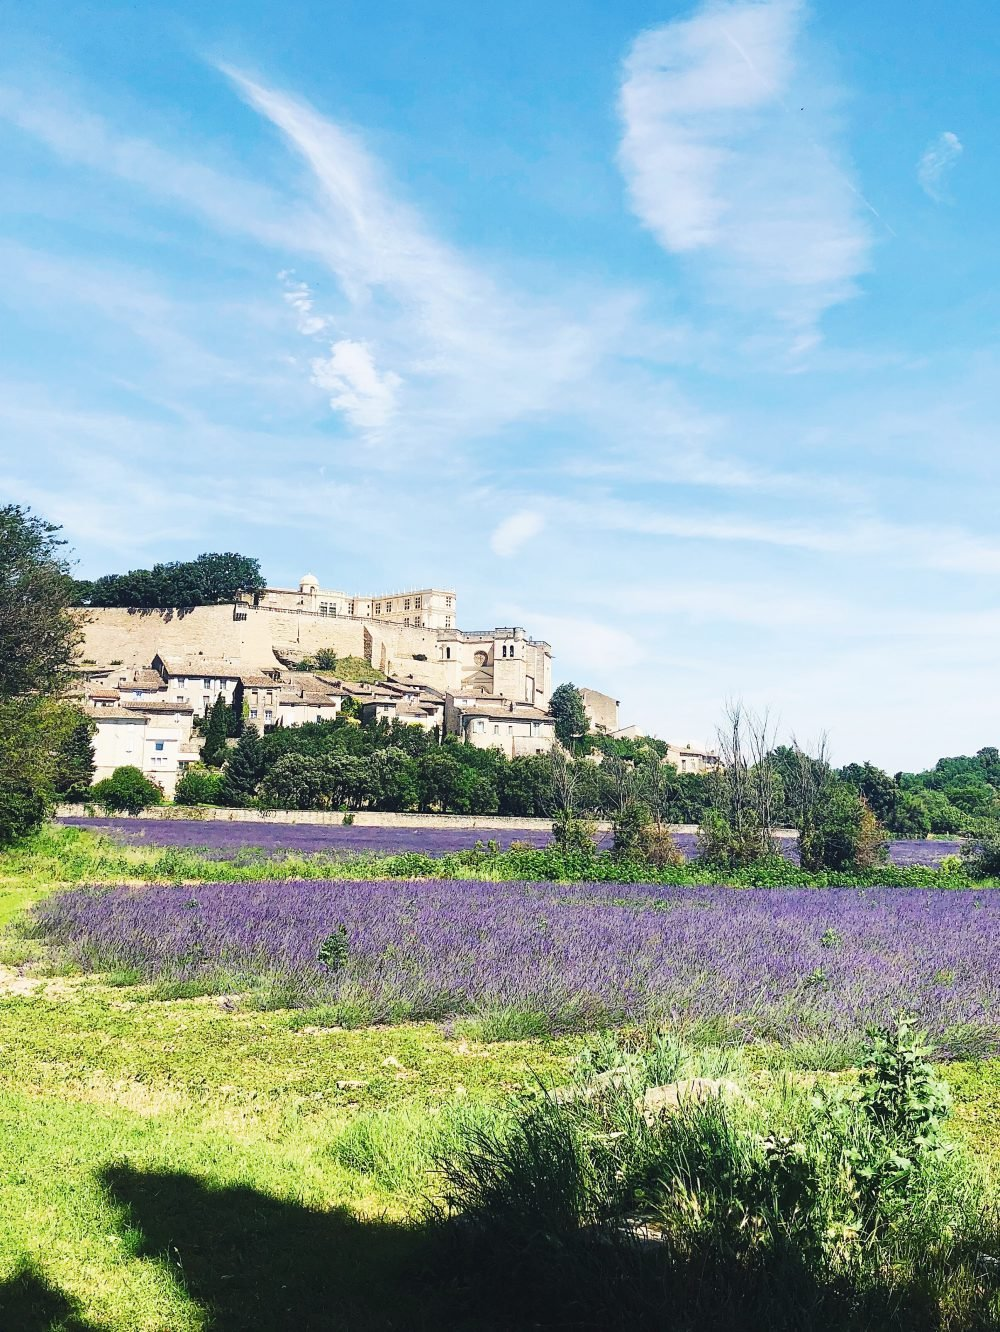 lavender field with stone buildings in the background